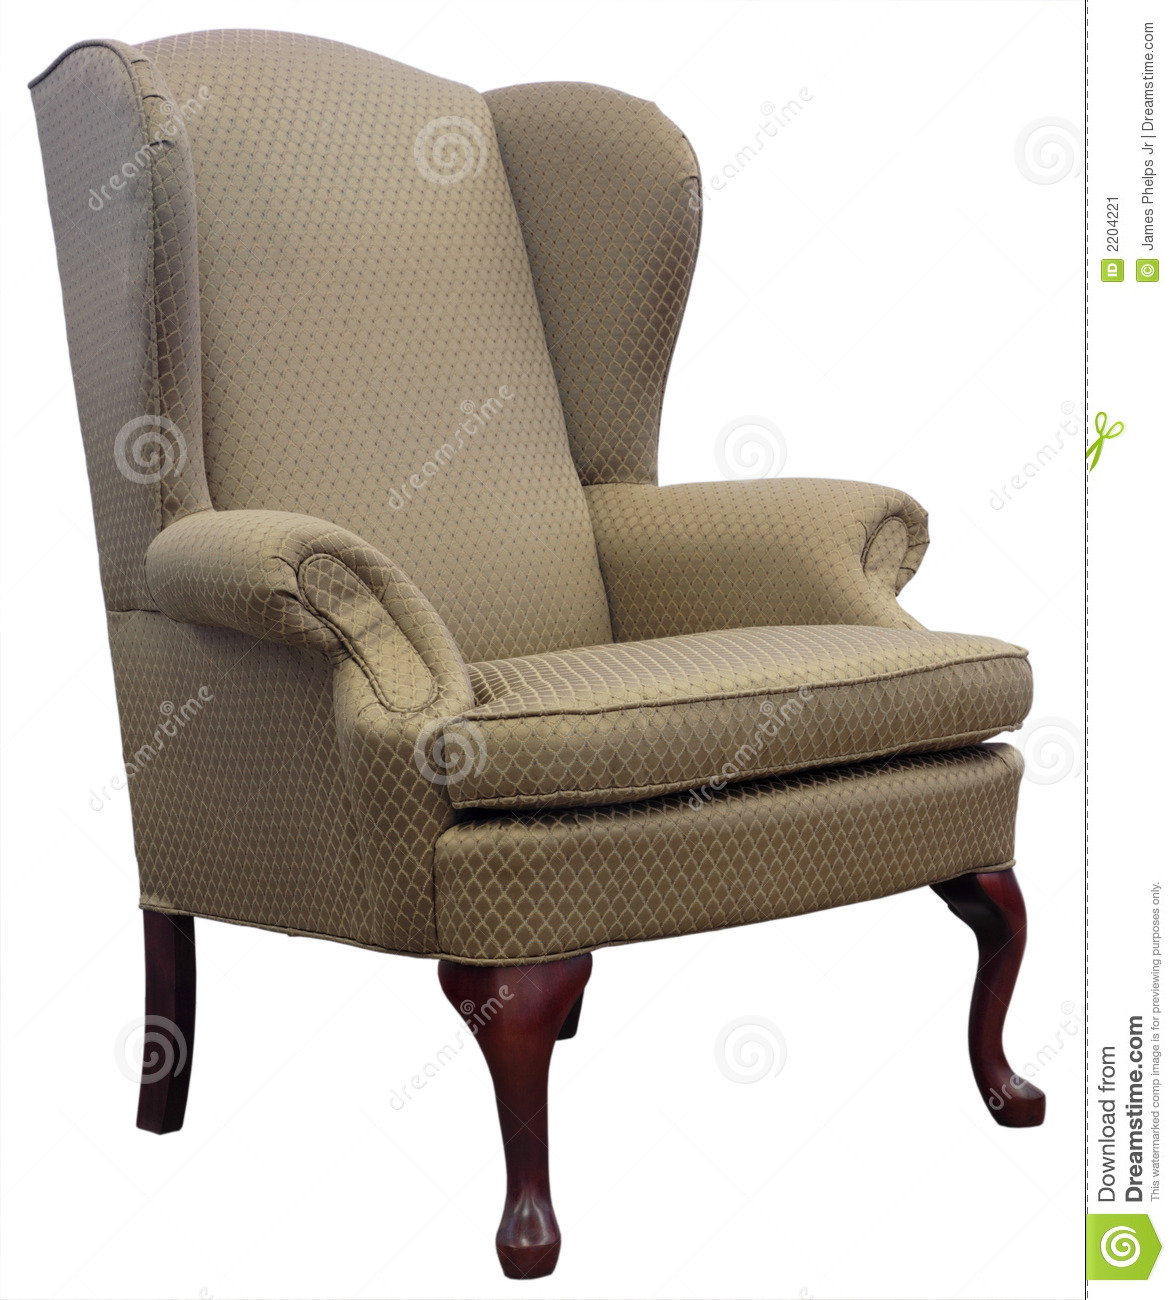 queen ann chairs why are adirondack so expensive anne style wing chair stock image 2204221